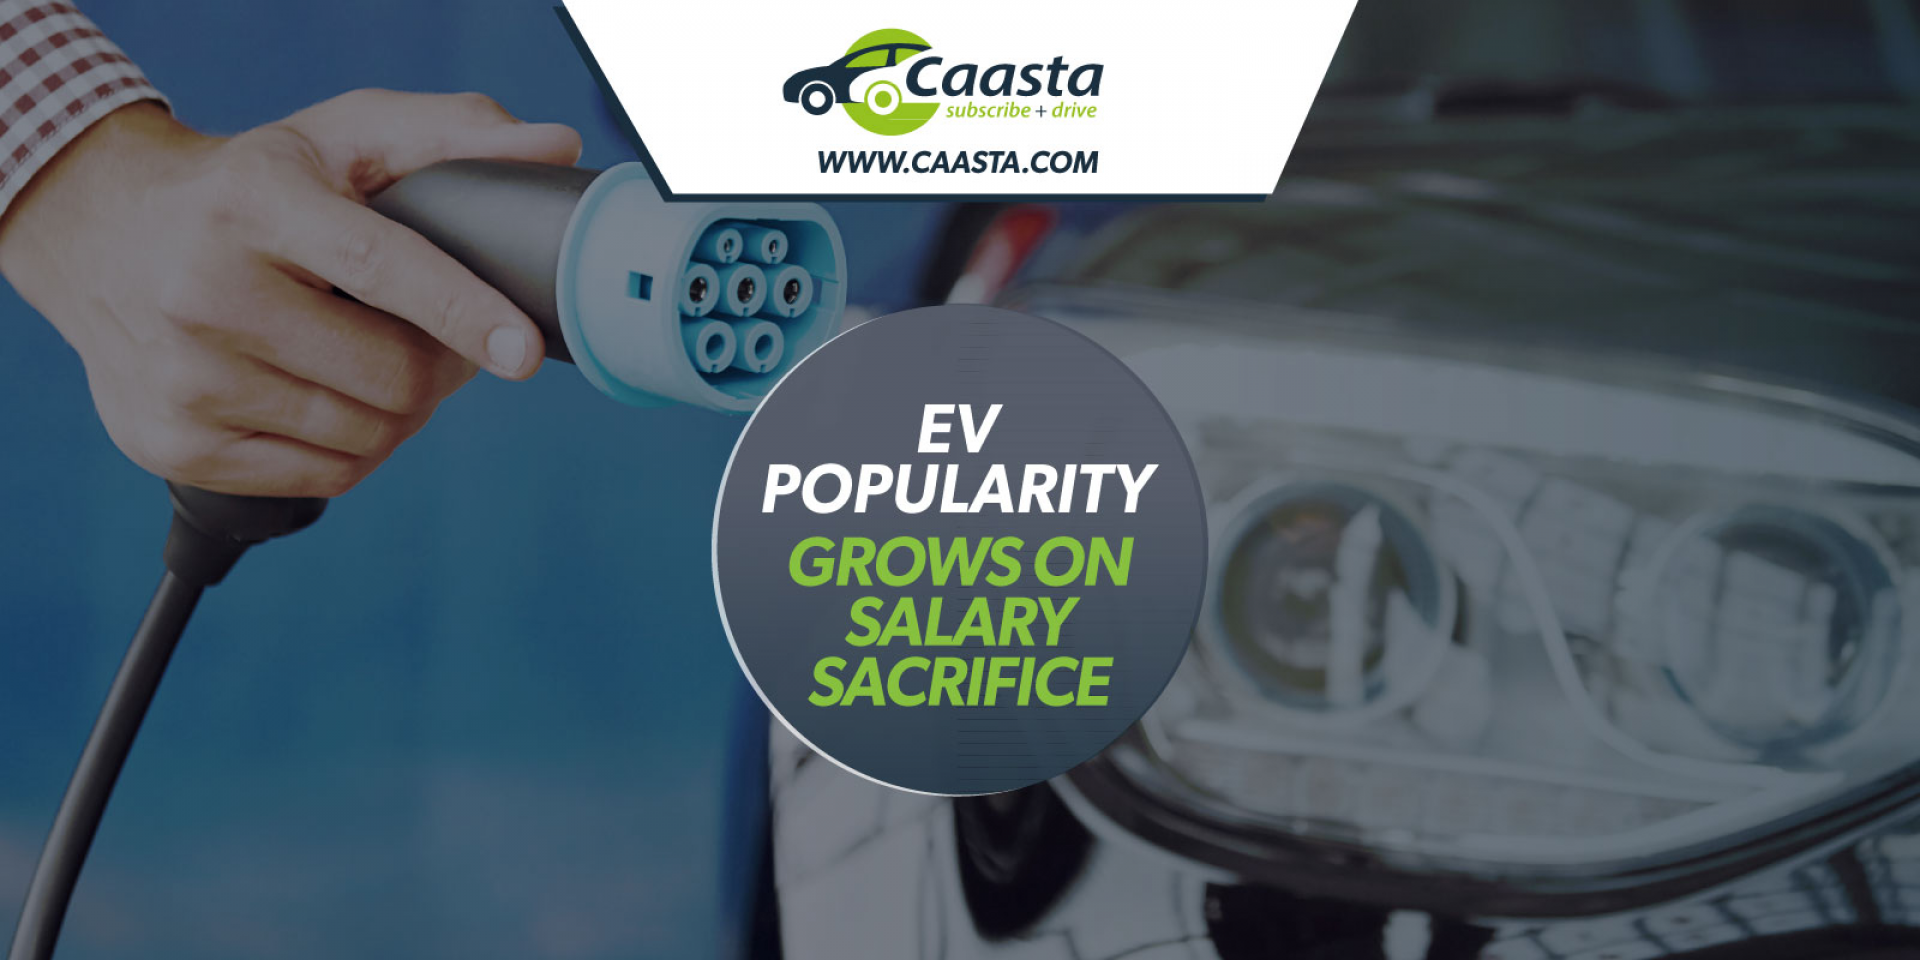 EV popularity grows on salary sacrifice